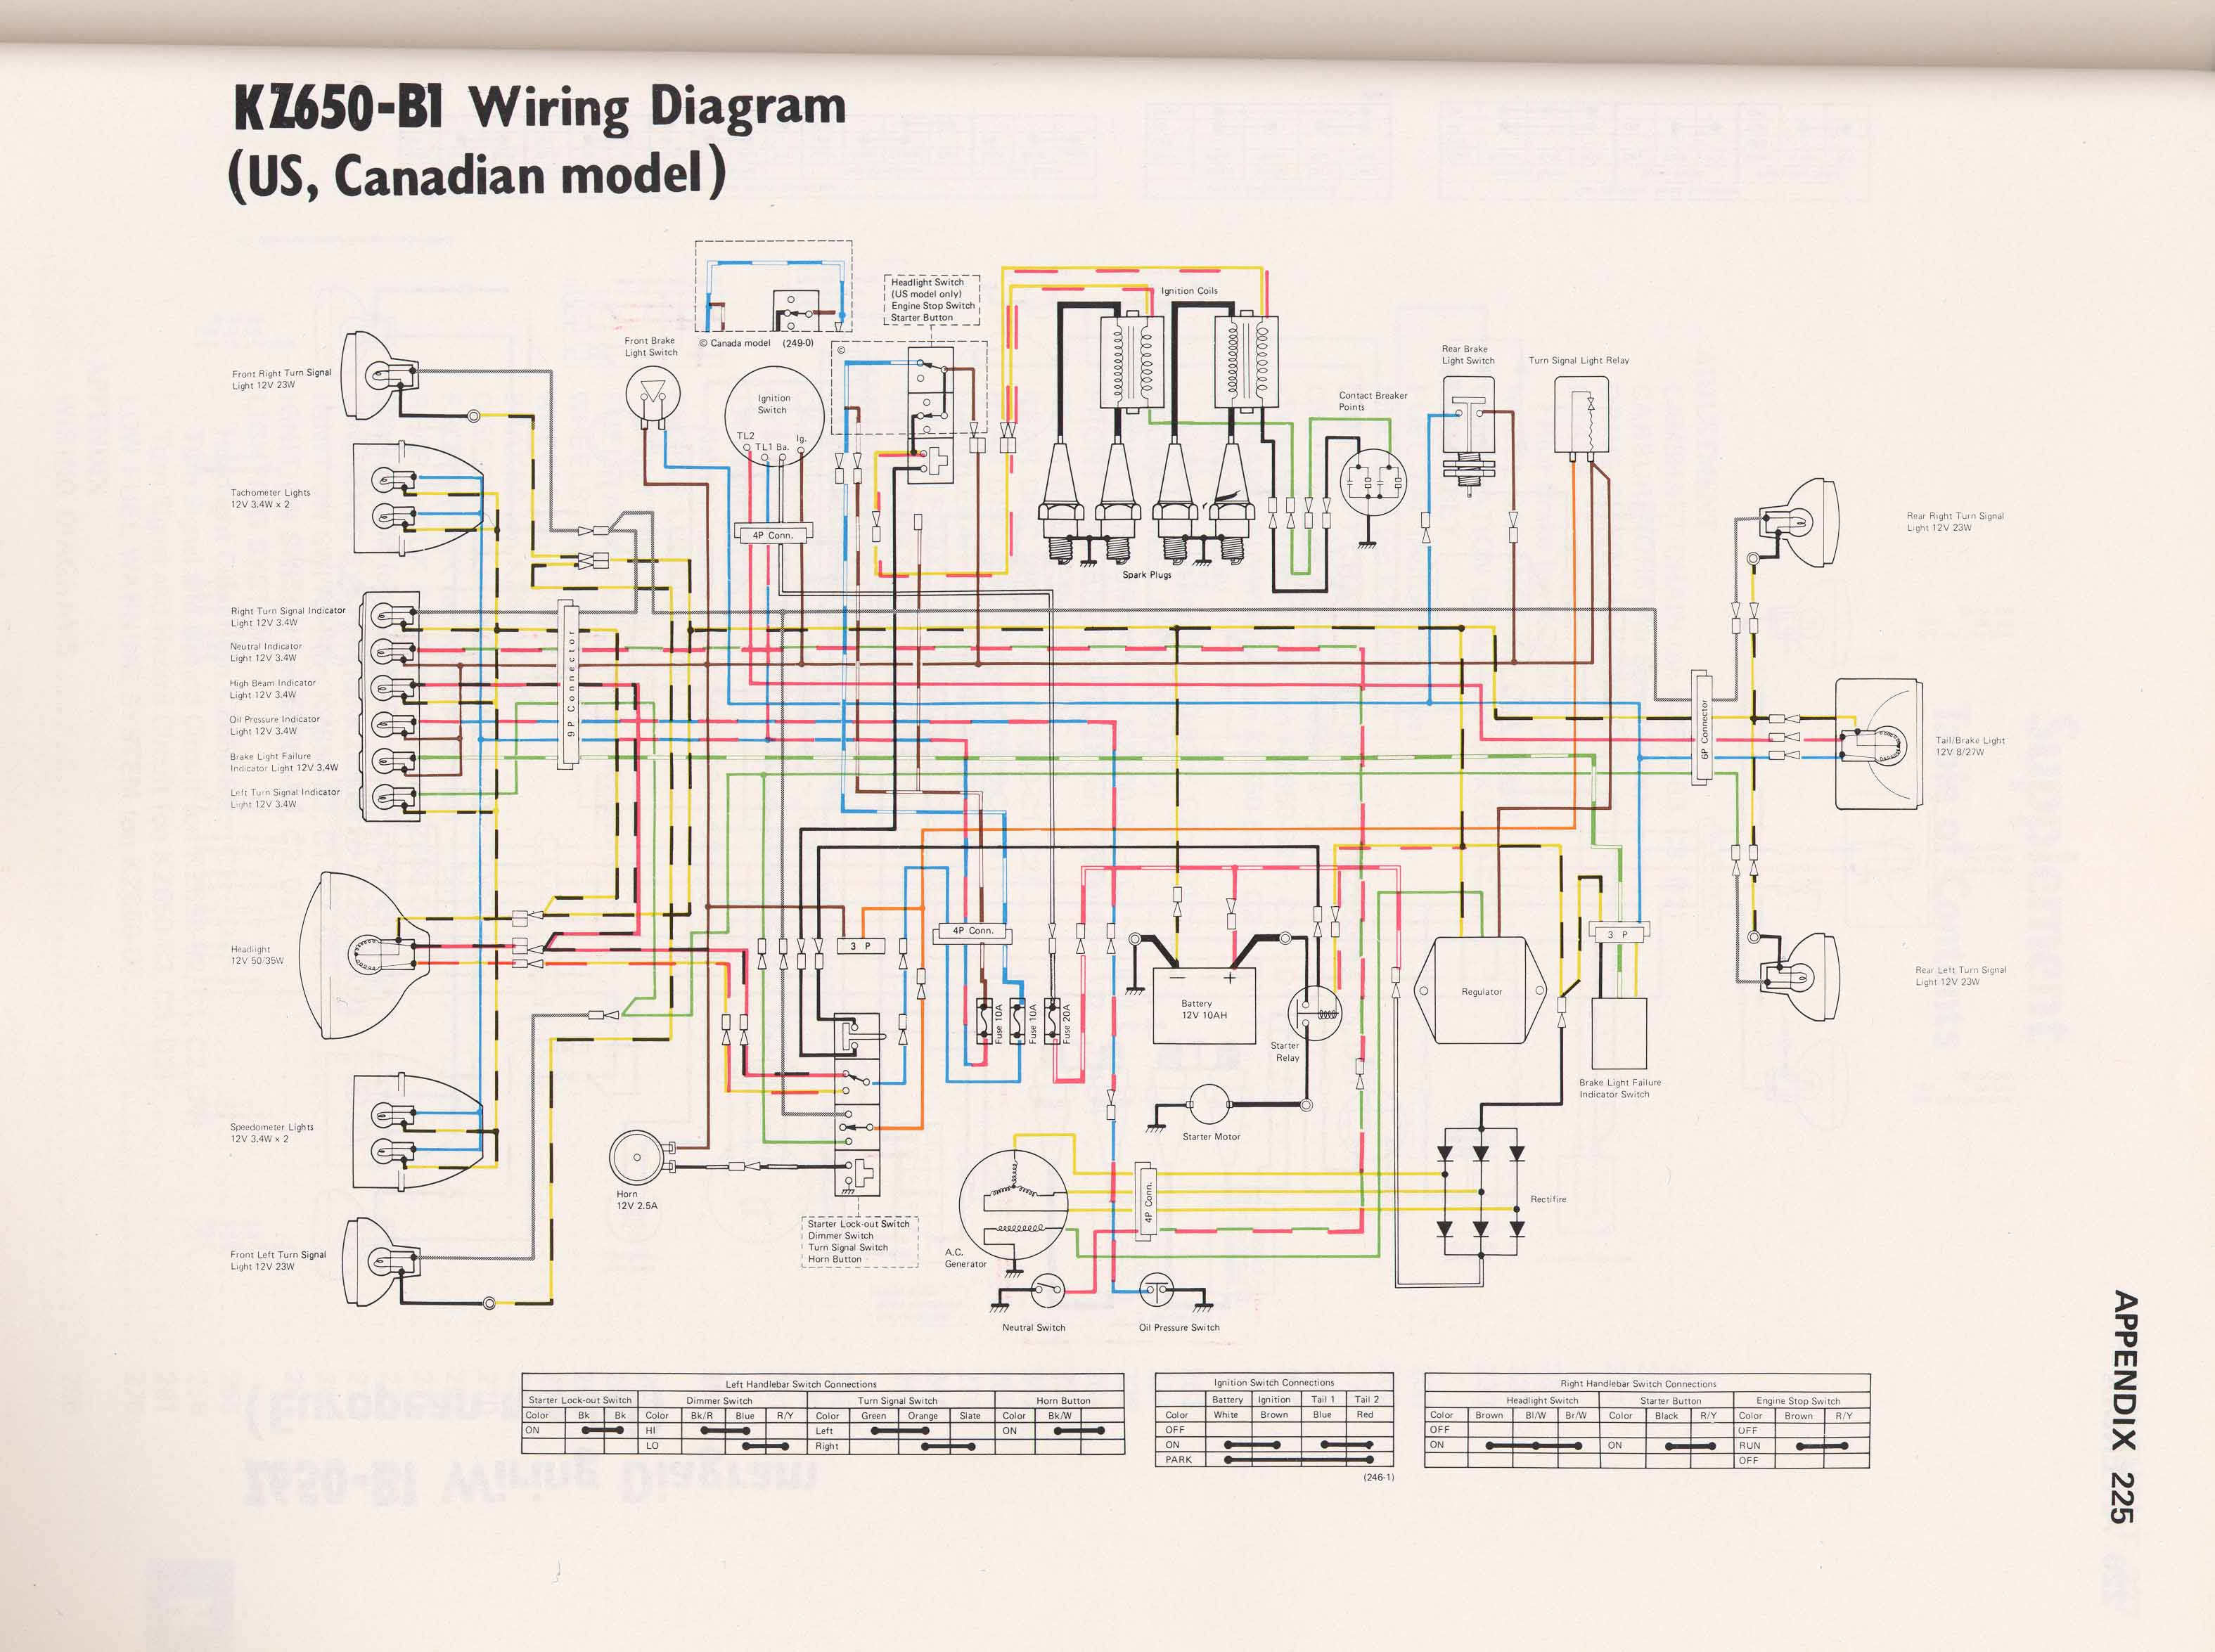 KZ650 B1 kz650 info wiring diagrams Basic Electrical Wiring Diagrams at soozxer.org